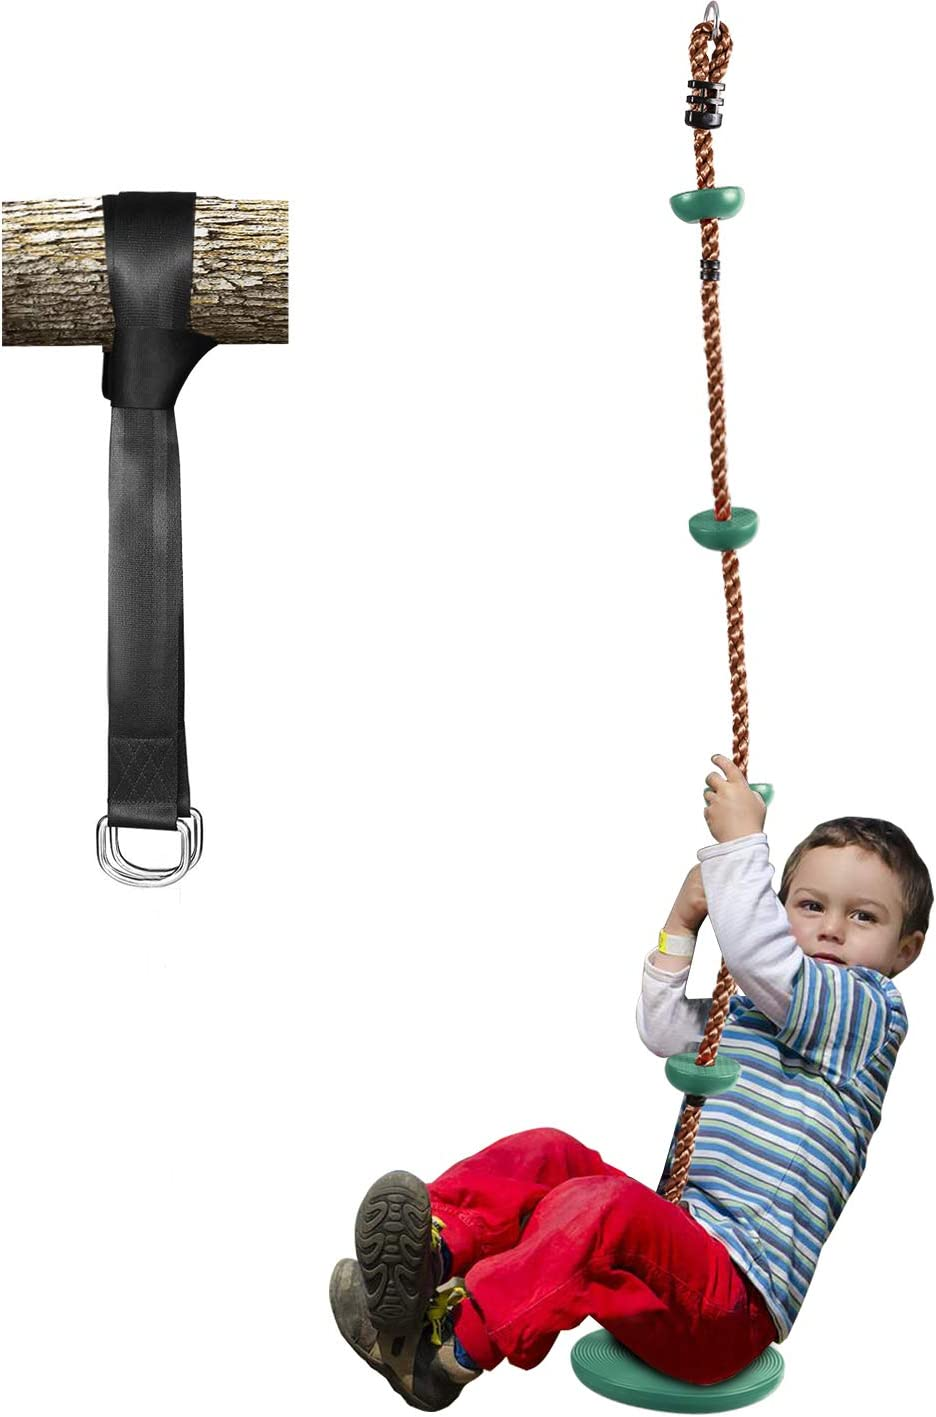 Red Kids and Adults Swing Seat with 57-86 Adjustable Rope,Tree Hanging Straps Hooks Rope,Non Slip EVA Soft Plastic Swing Seat Replacement Indoor and Outdoor